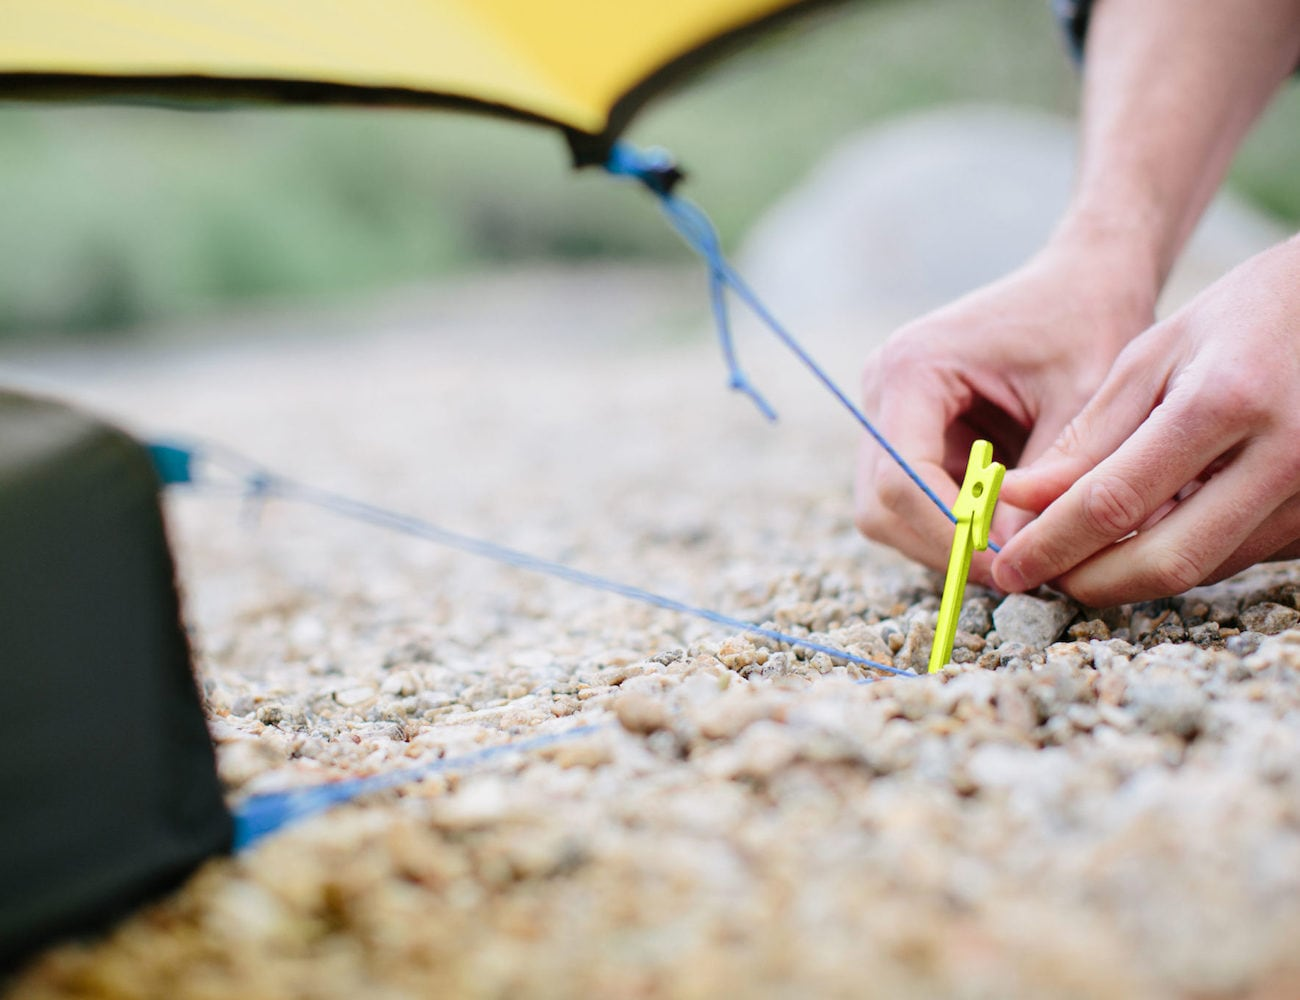 NEMO Airpin Ultralight Tent Stake keeps tent cords tight